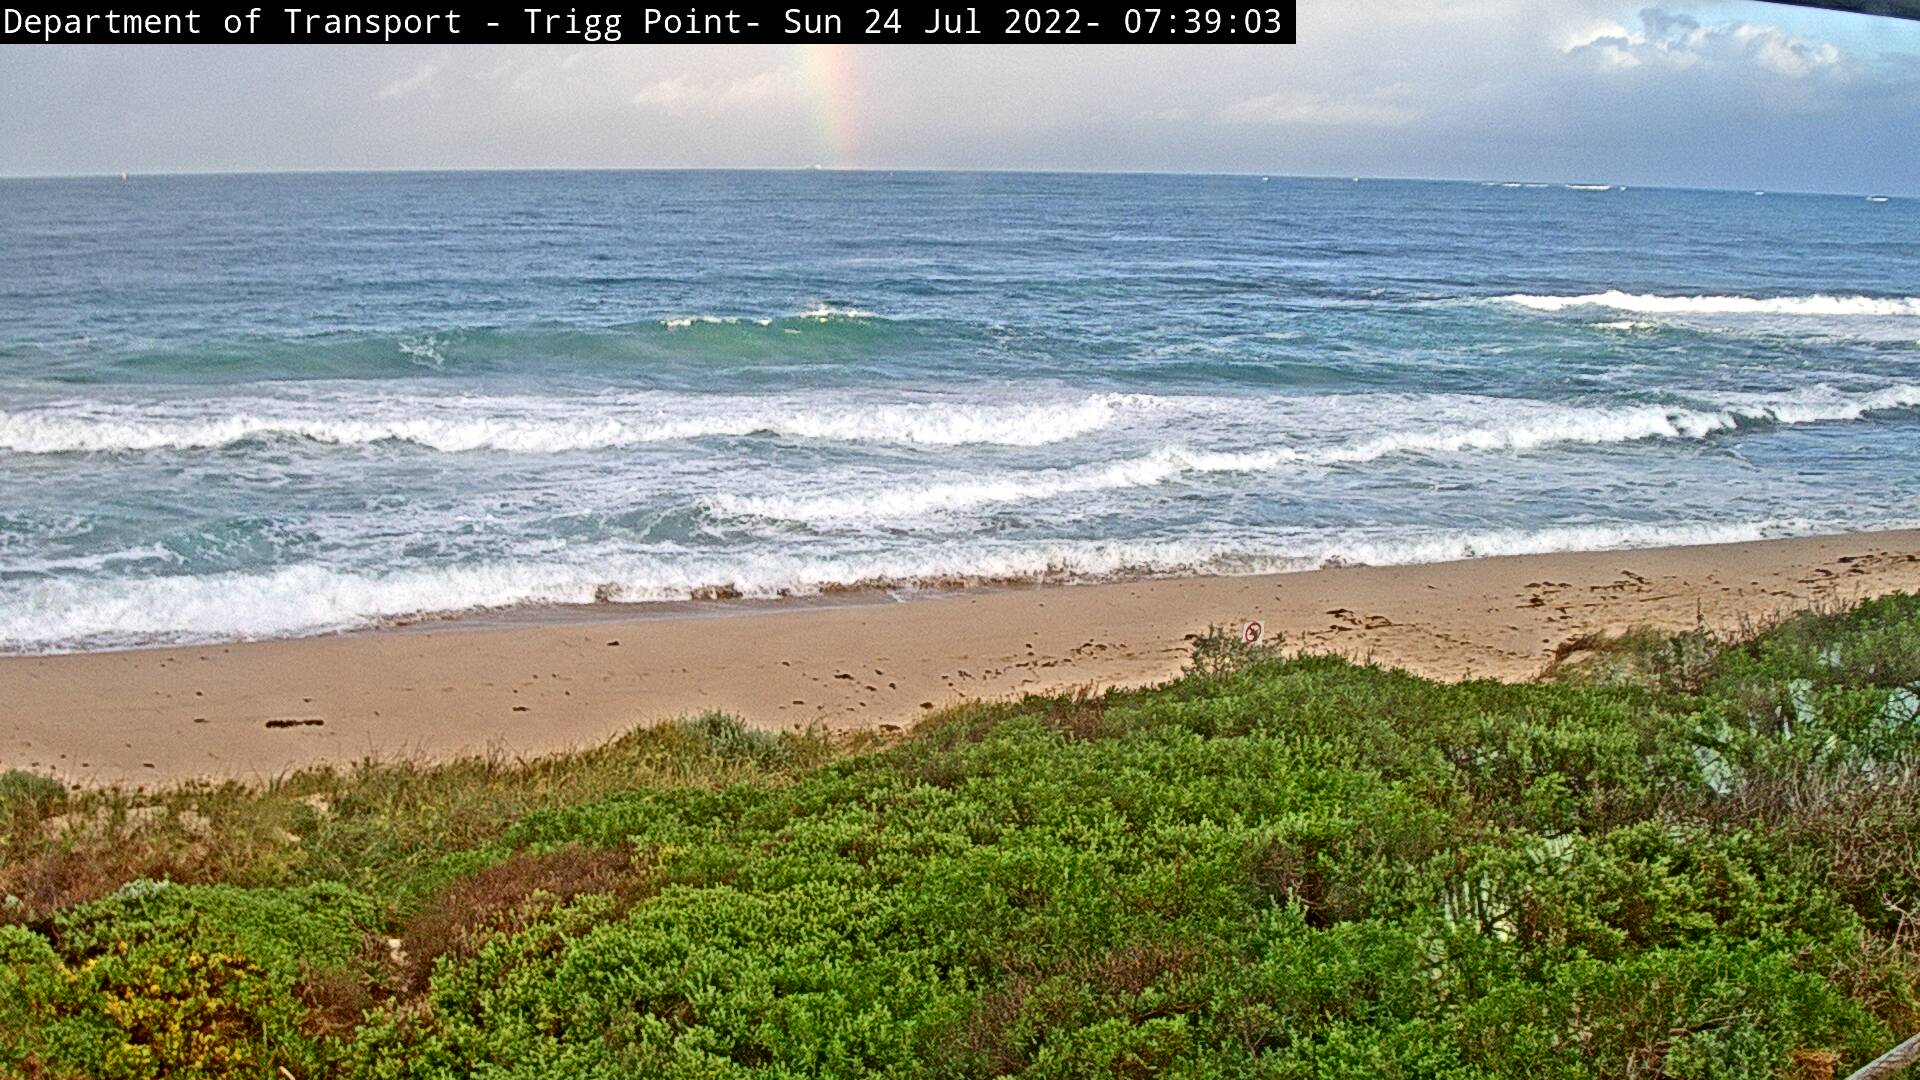 Perth, Trigg Point beach Live Cam, Australia